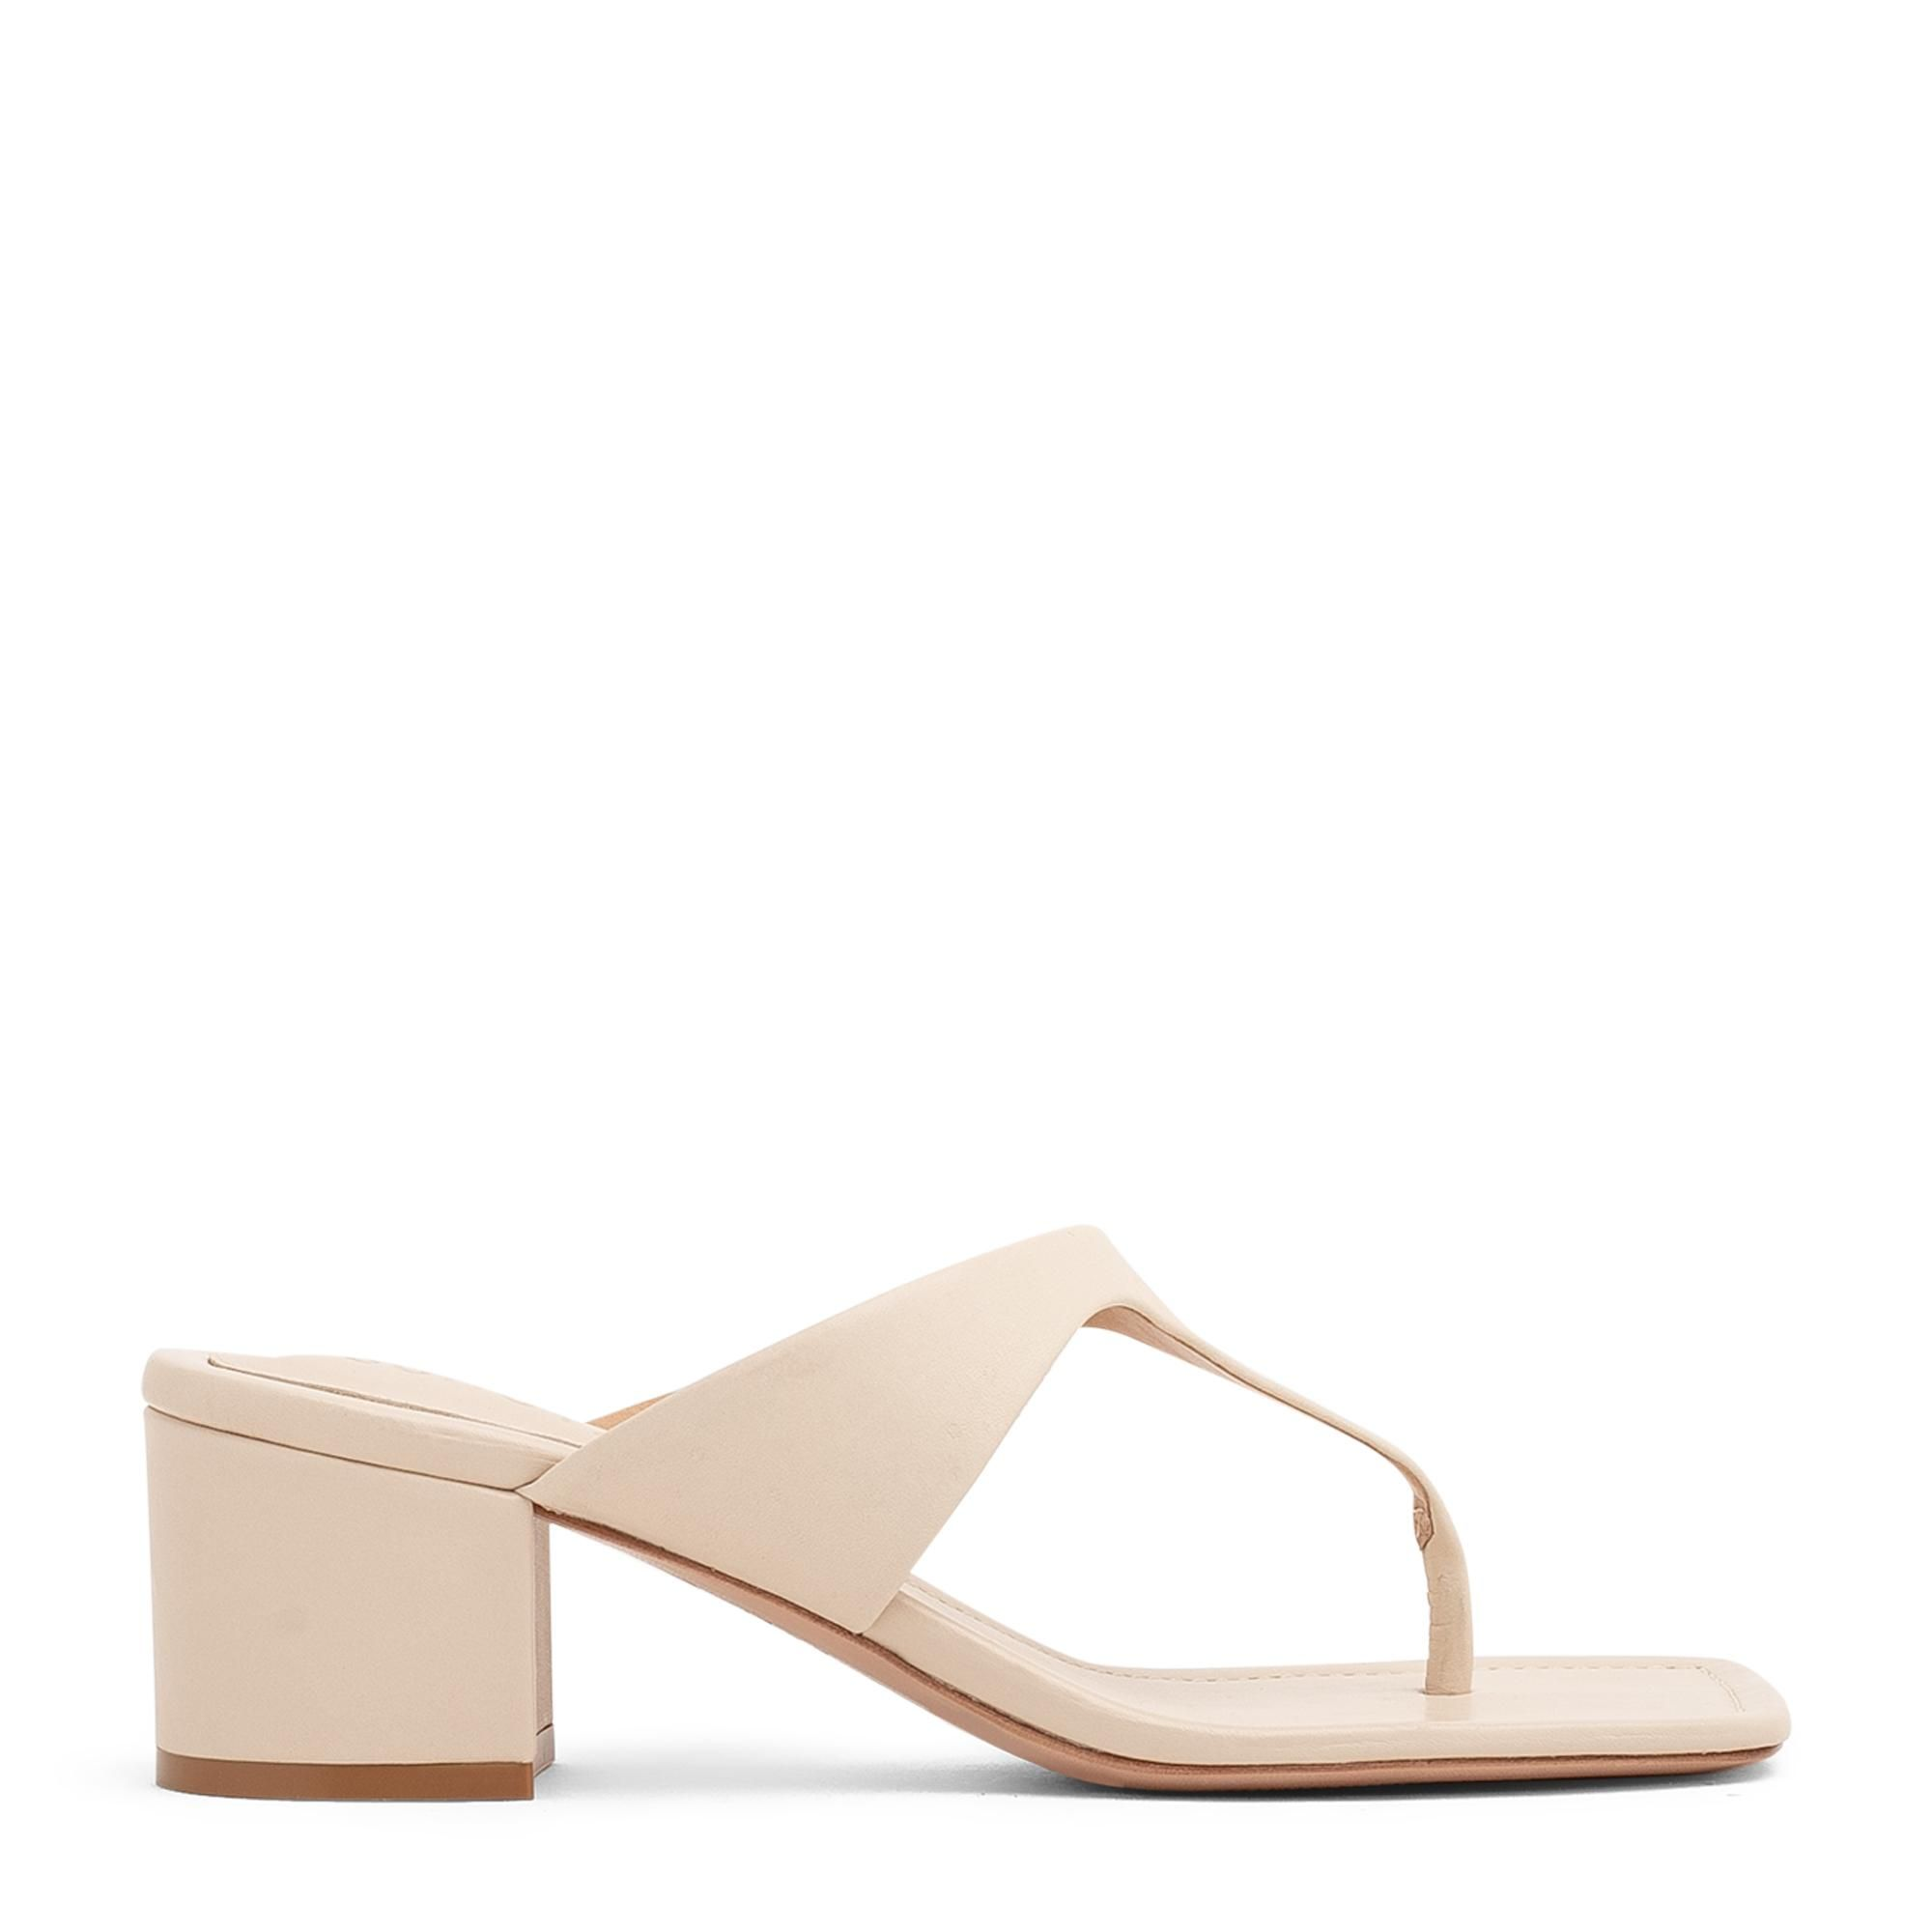 Darlin leather sandals